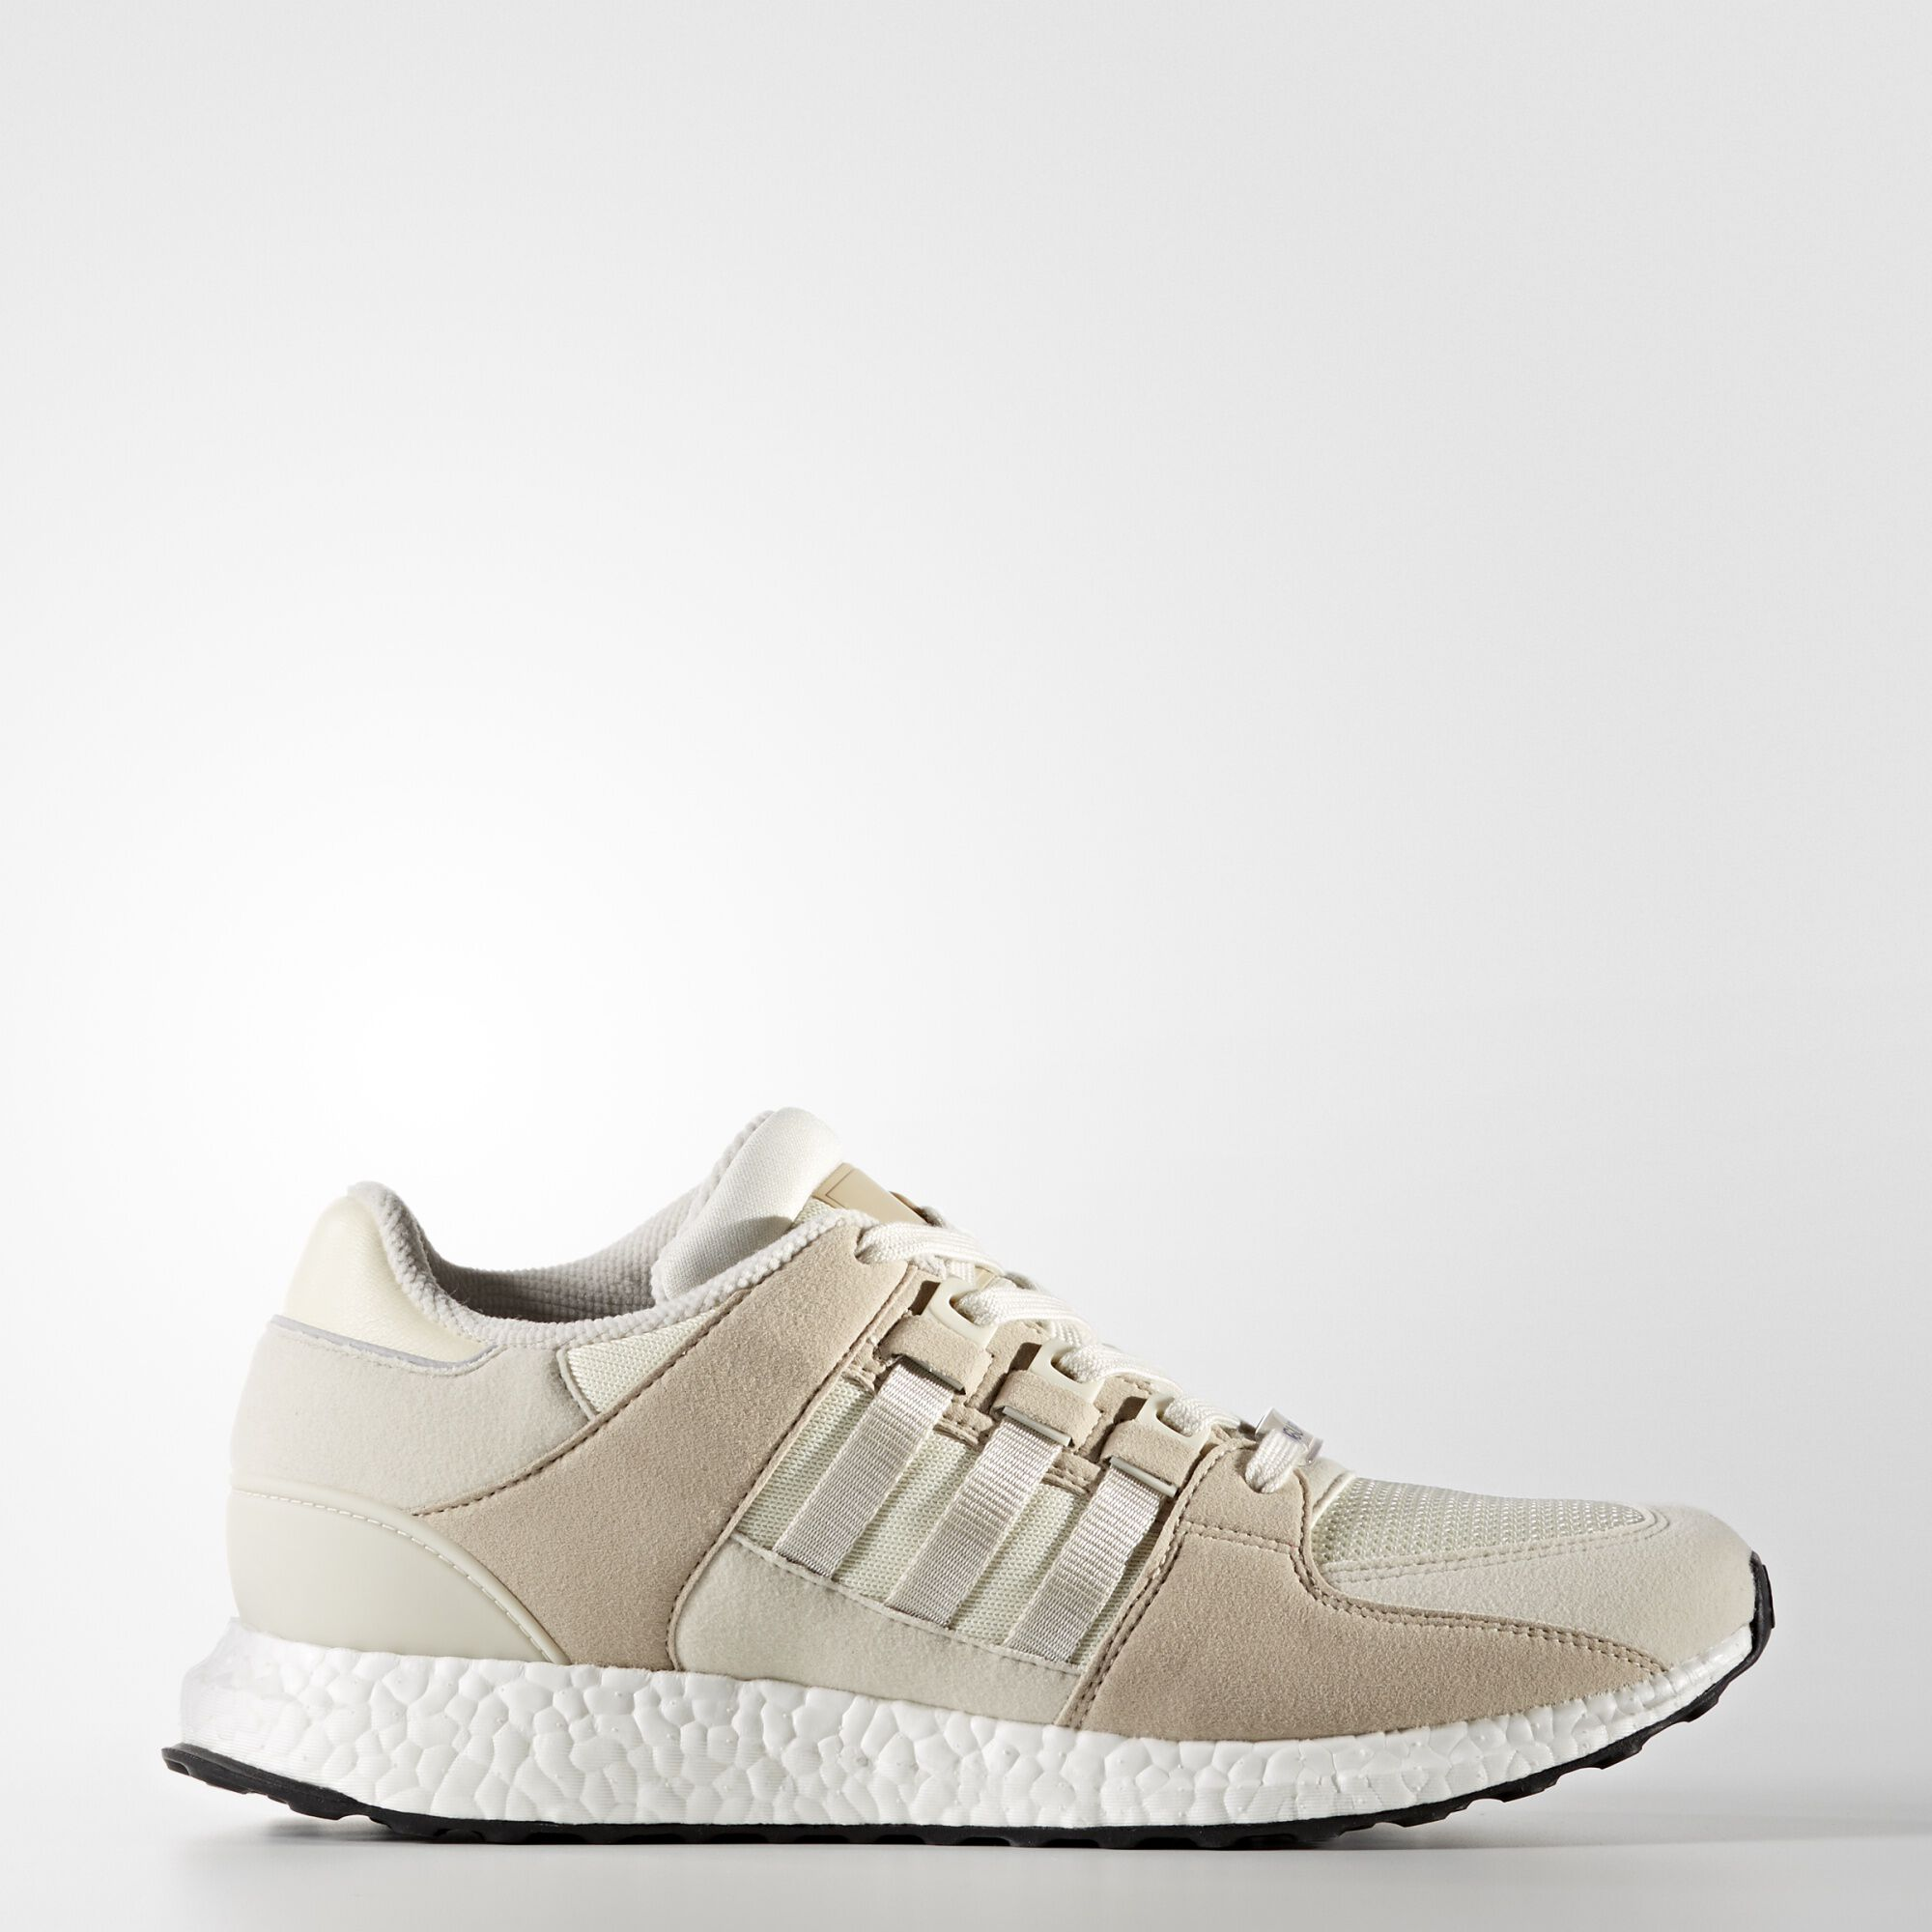 adidas EQT Support Joins miadidas